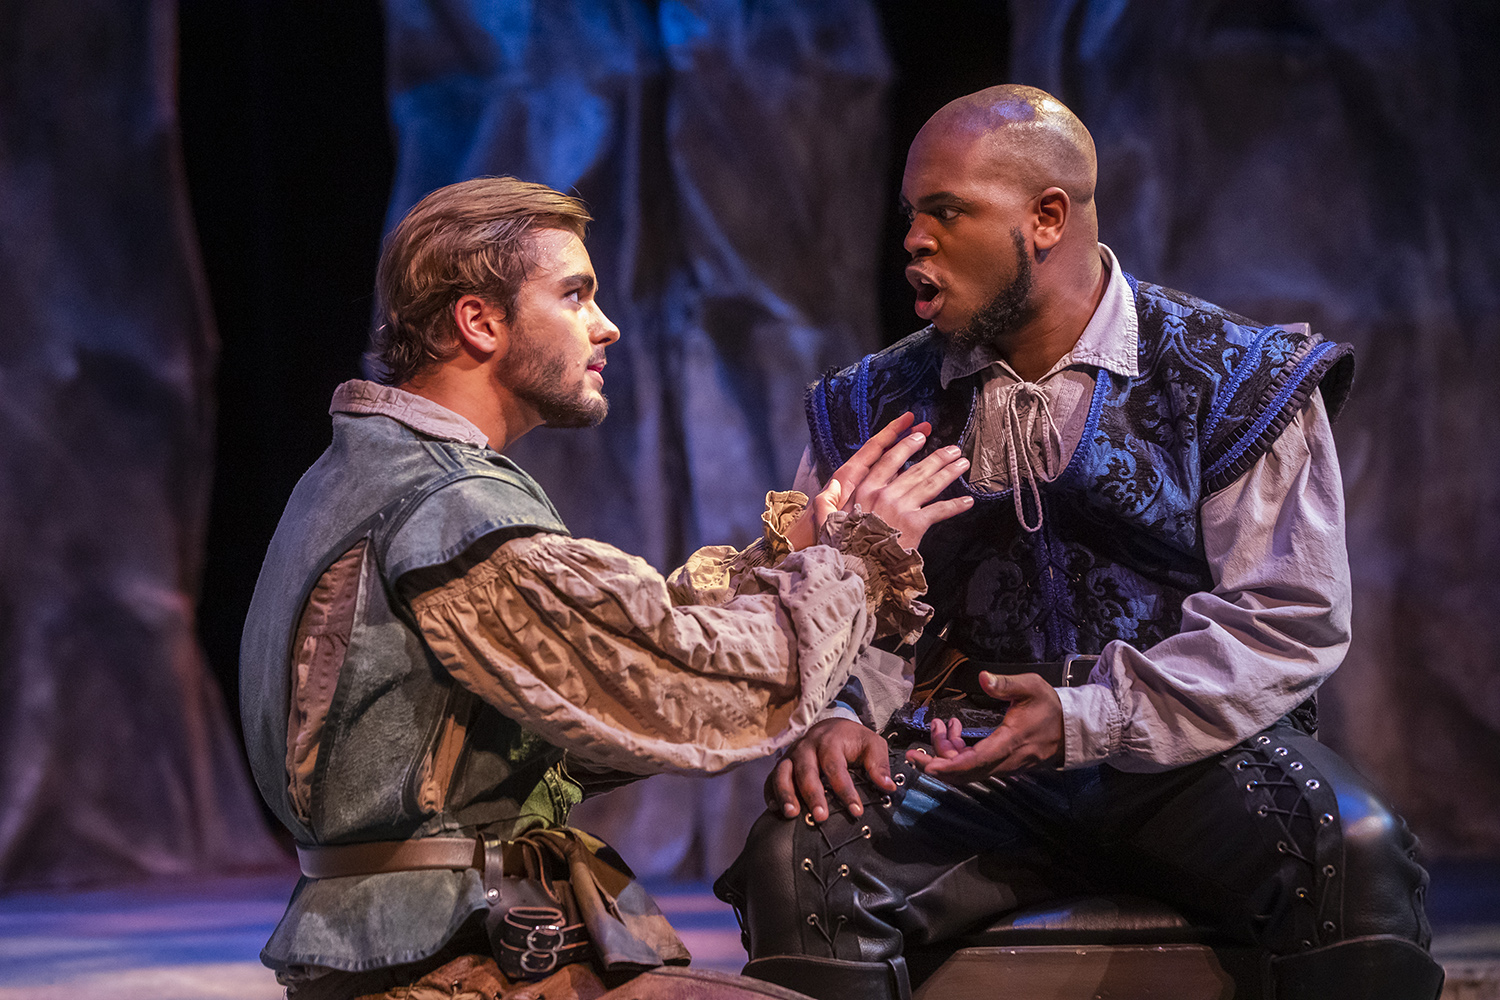 The Department of Theatre in the College of Arts, Social Sciences and Humanities presents Othello at the Mainstage Theatre at the Center for Fine and Performing Arts, Building 82, on the Pensacola campus from October 18, 19, 25 and 26 at 7:30 p.m. and October 20 and 27 at 2:30 p.m.